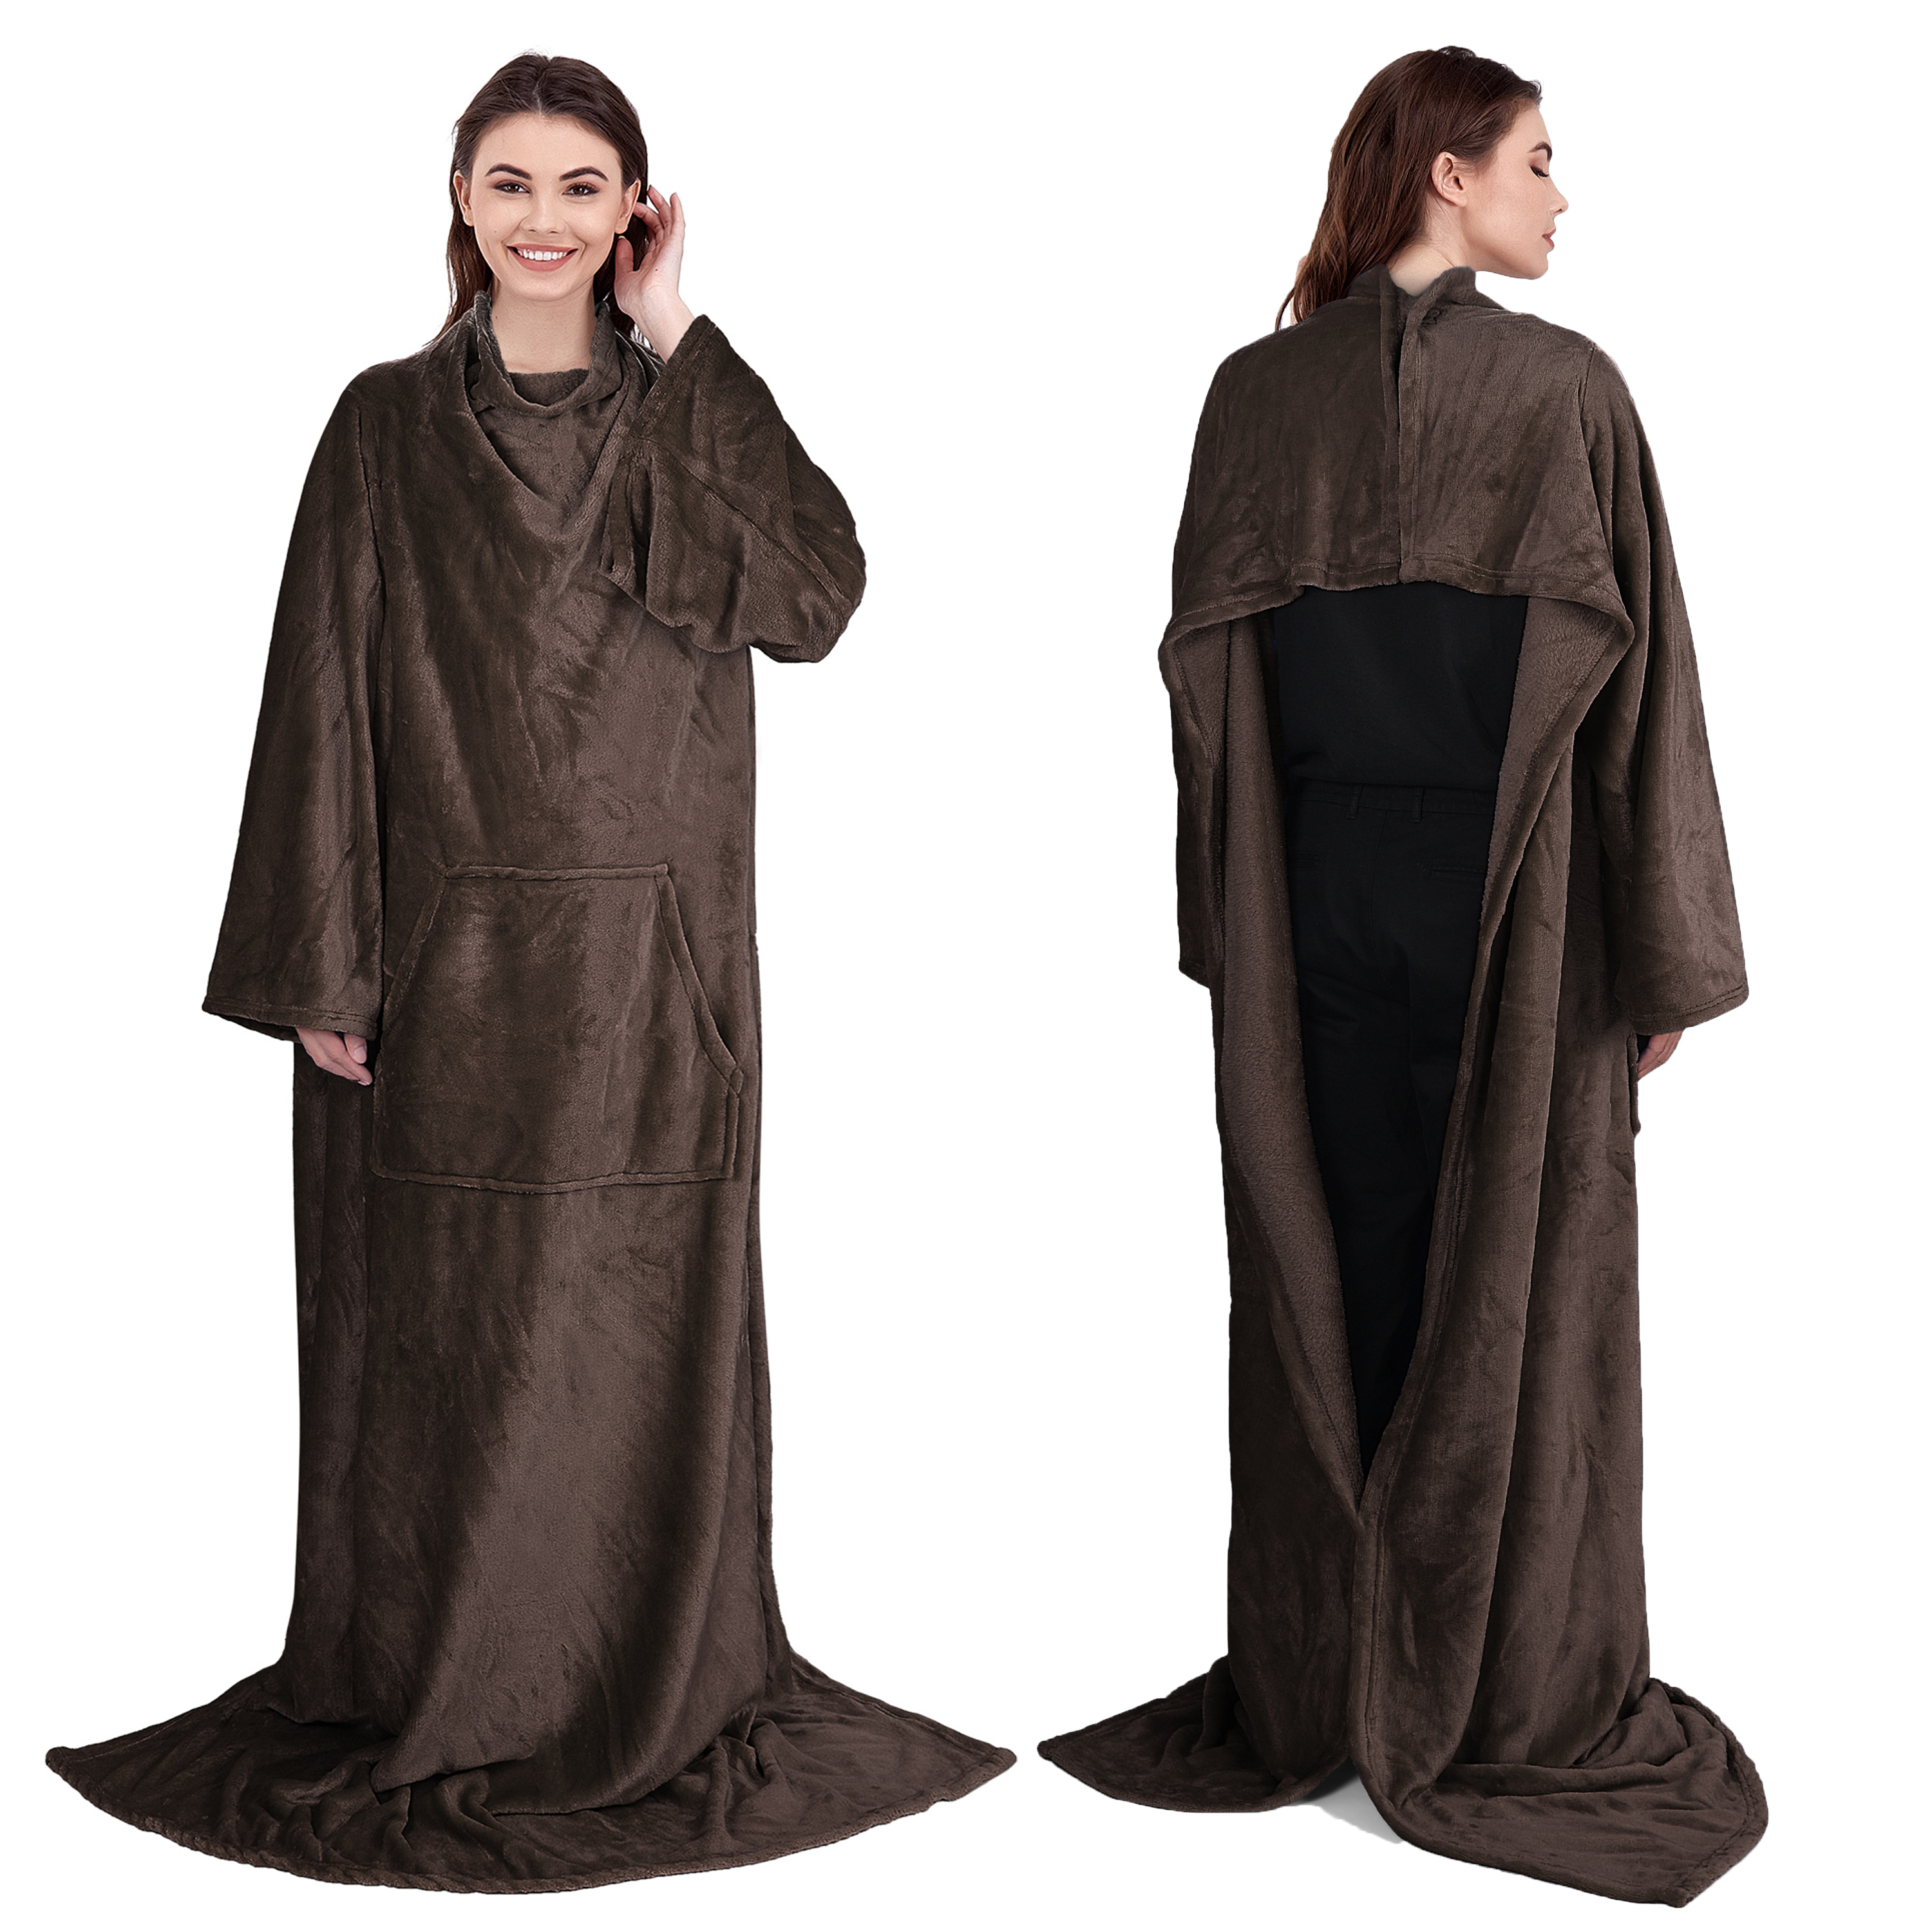 Sun-Hat-Camo-Cap-w-Wide-Brim-Ear-amp-Neck-UV-Protection-for-Fishing-Camping-Hiking thumbnail 5